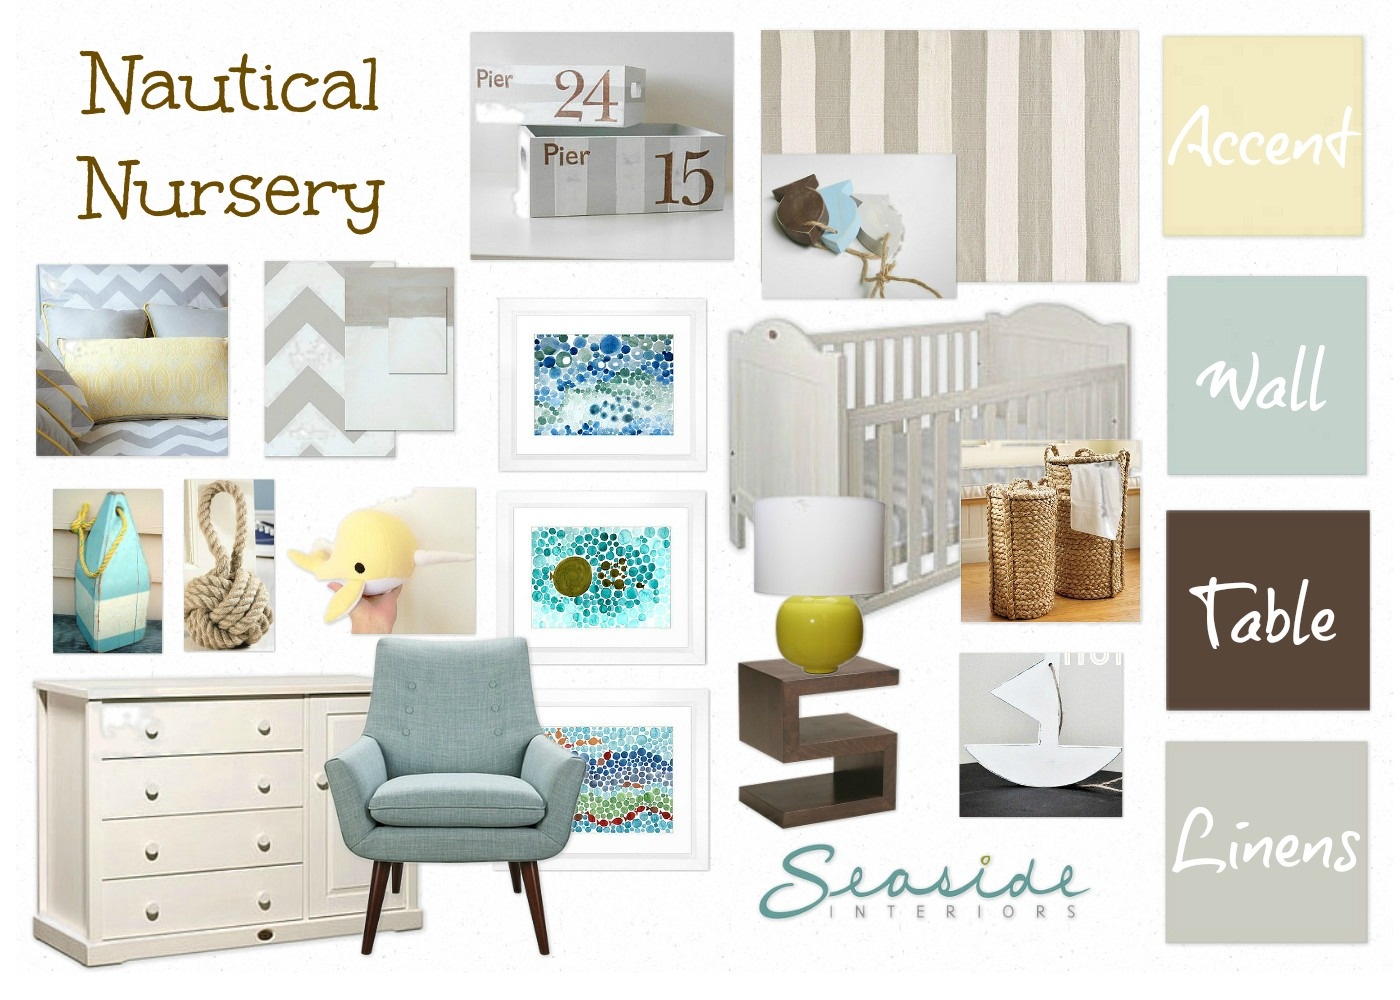 Not Your Typical Nautical Nursery But It Might Just Be My Favorite She Wanted To Soft And A Place That They Could Relax With The Baby I Think